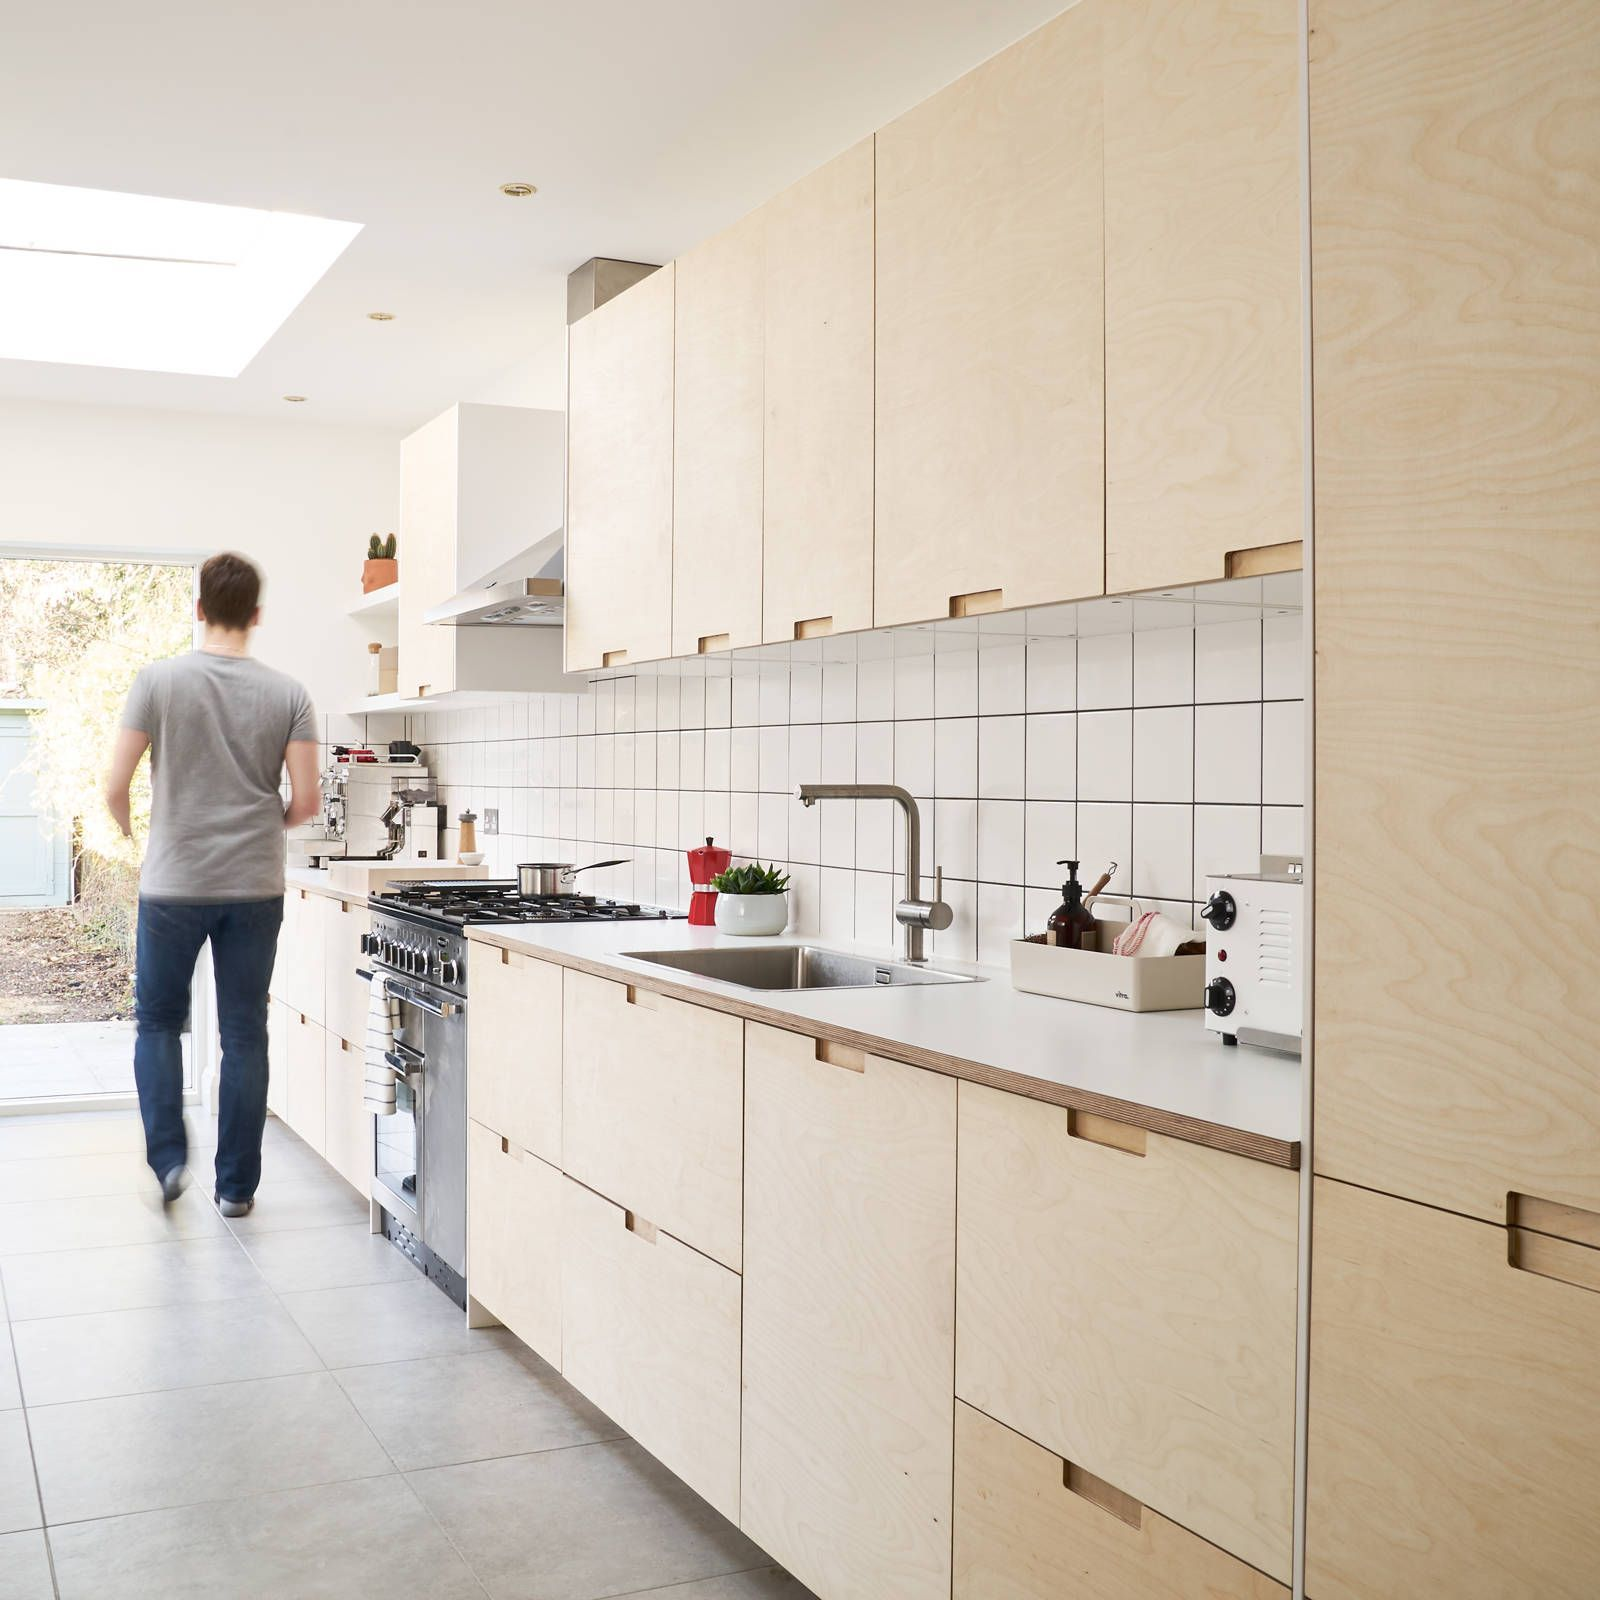 Ikea Kitchen Cabinets With Bespoke Birch Plywood Doors And Drawer Fronts Kitchen Door Designs Plywood Kitchen Birch Kitchen Cabinets